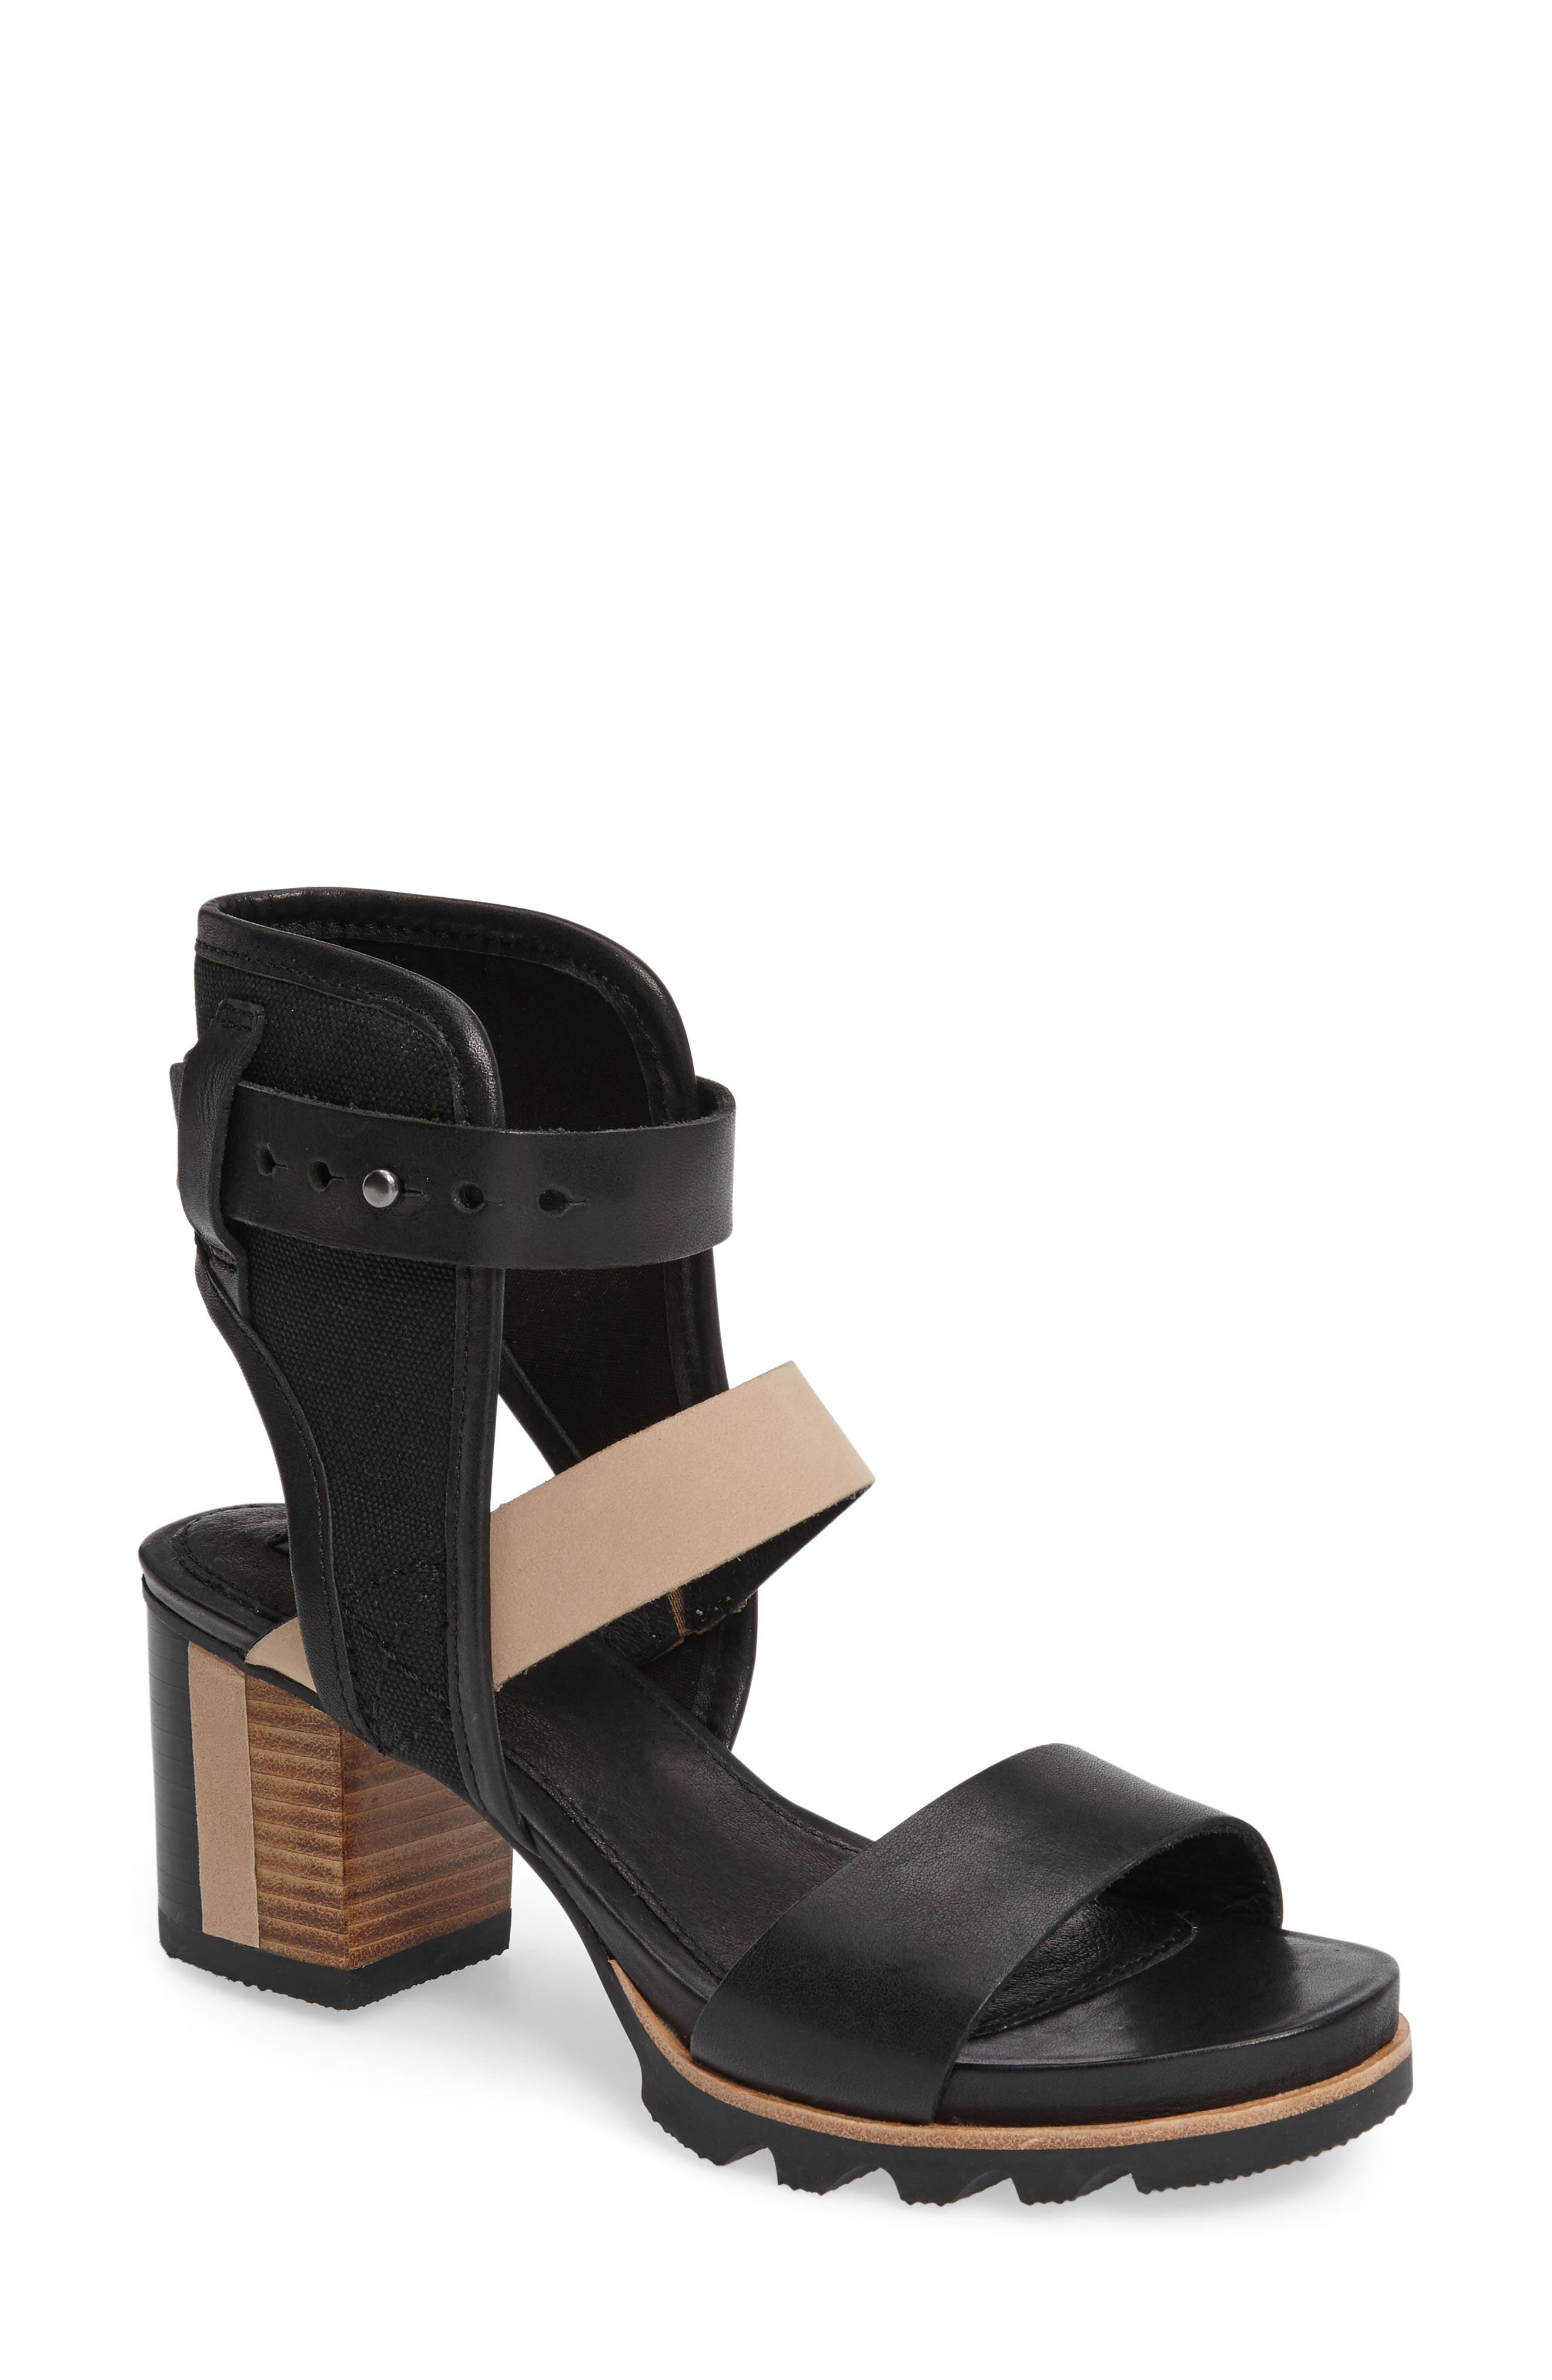 Alternate Image 1 Selected - SOREL Addington Ankle Cuff Sandal (Women)